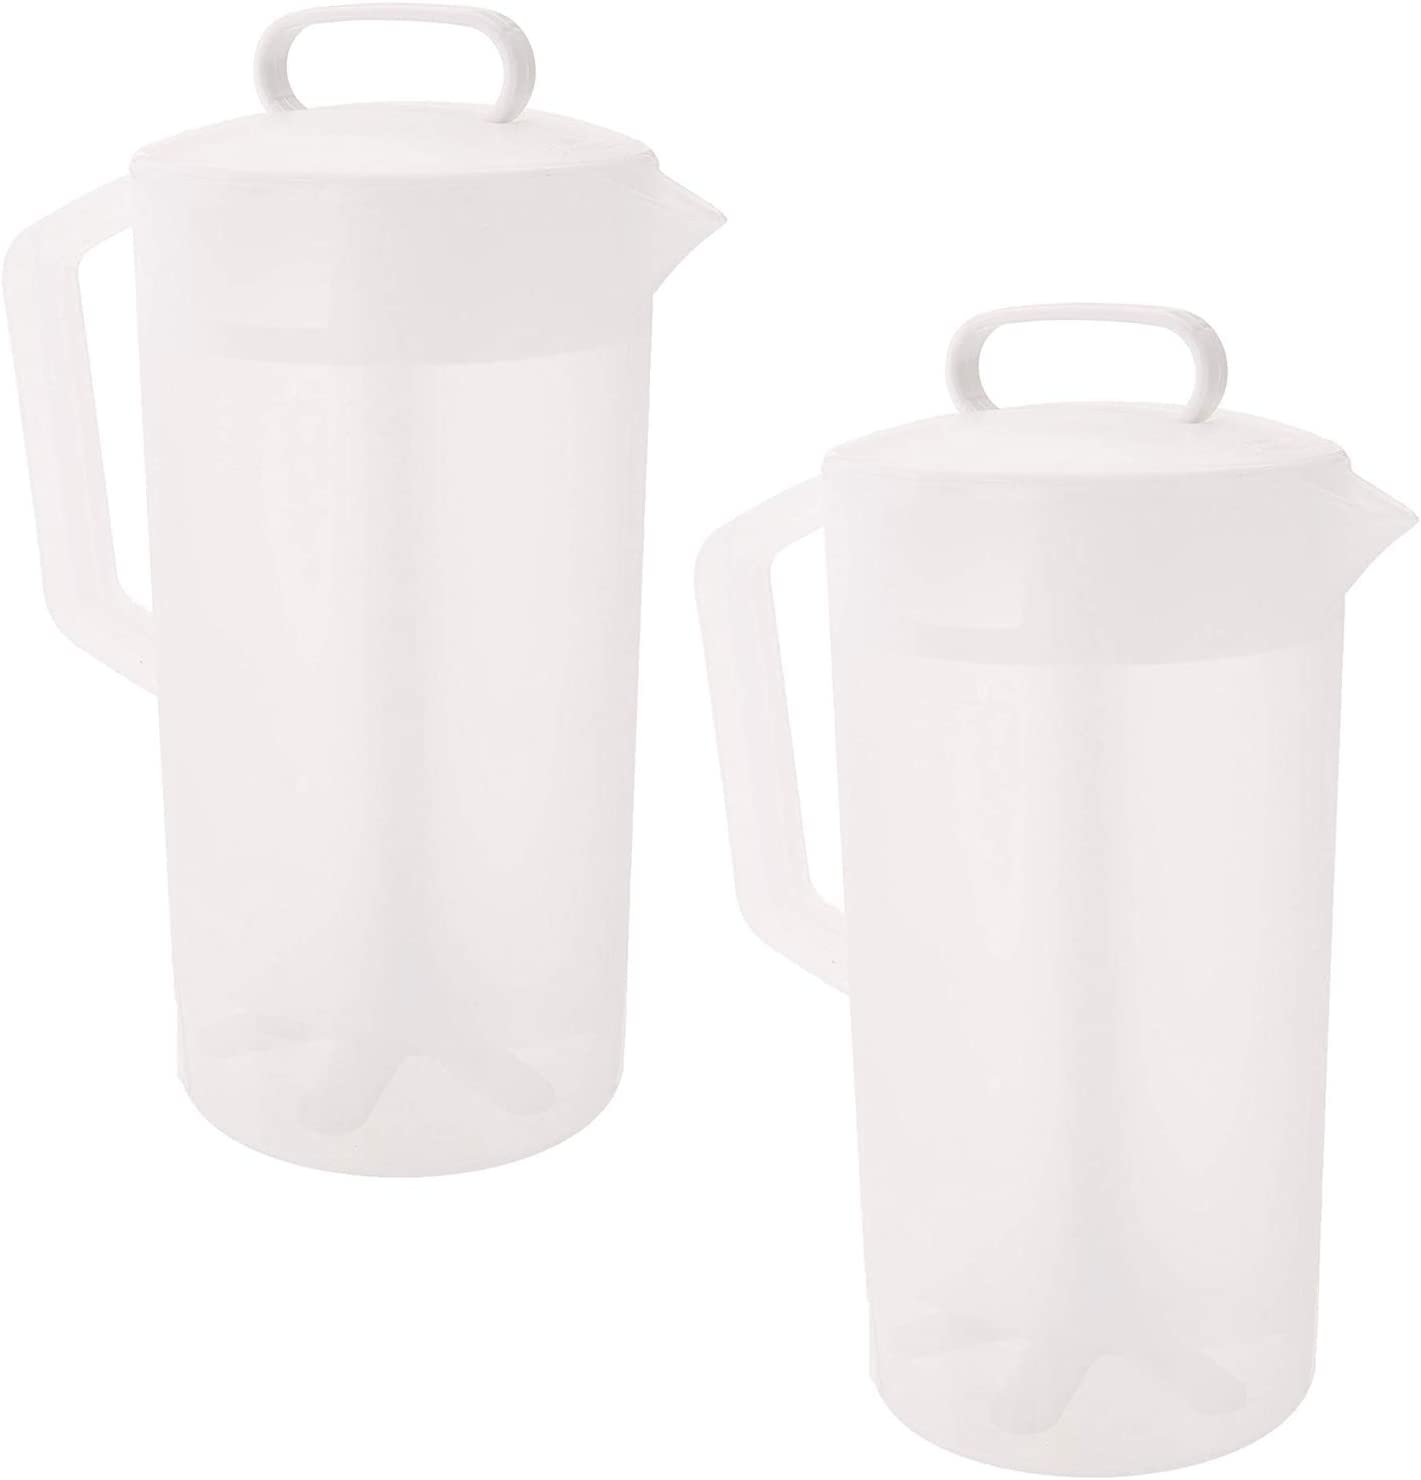 Rubbermaid - Mixing Pitcher, (2 Quart Capacity), (White) (2 Pack)